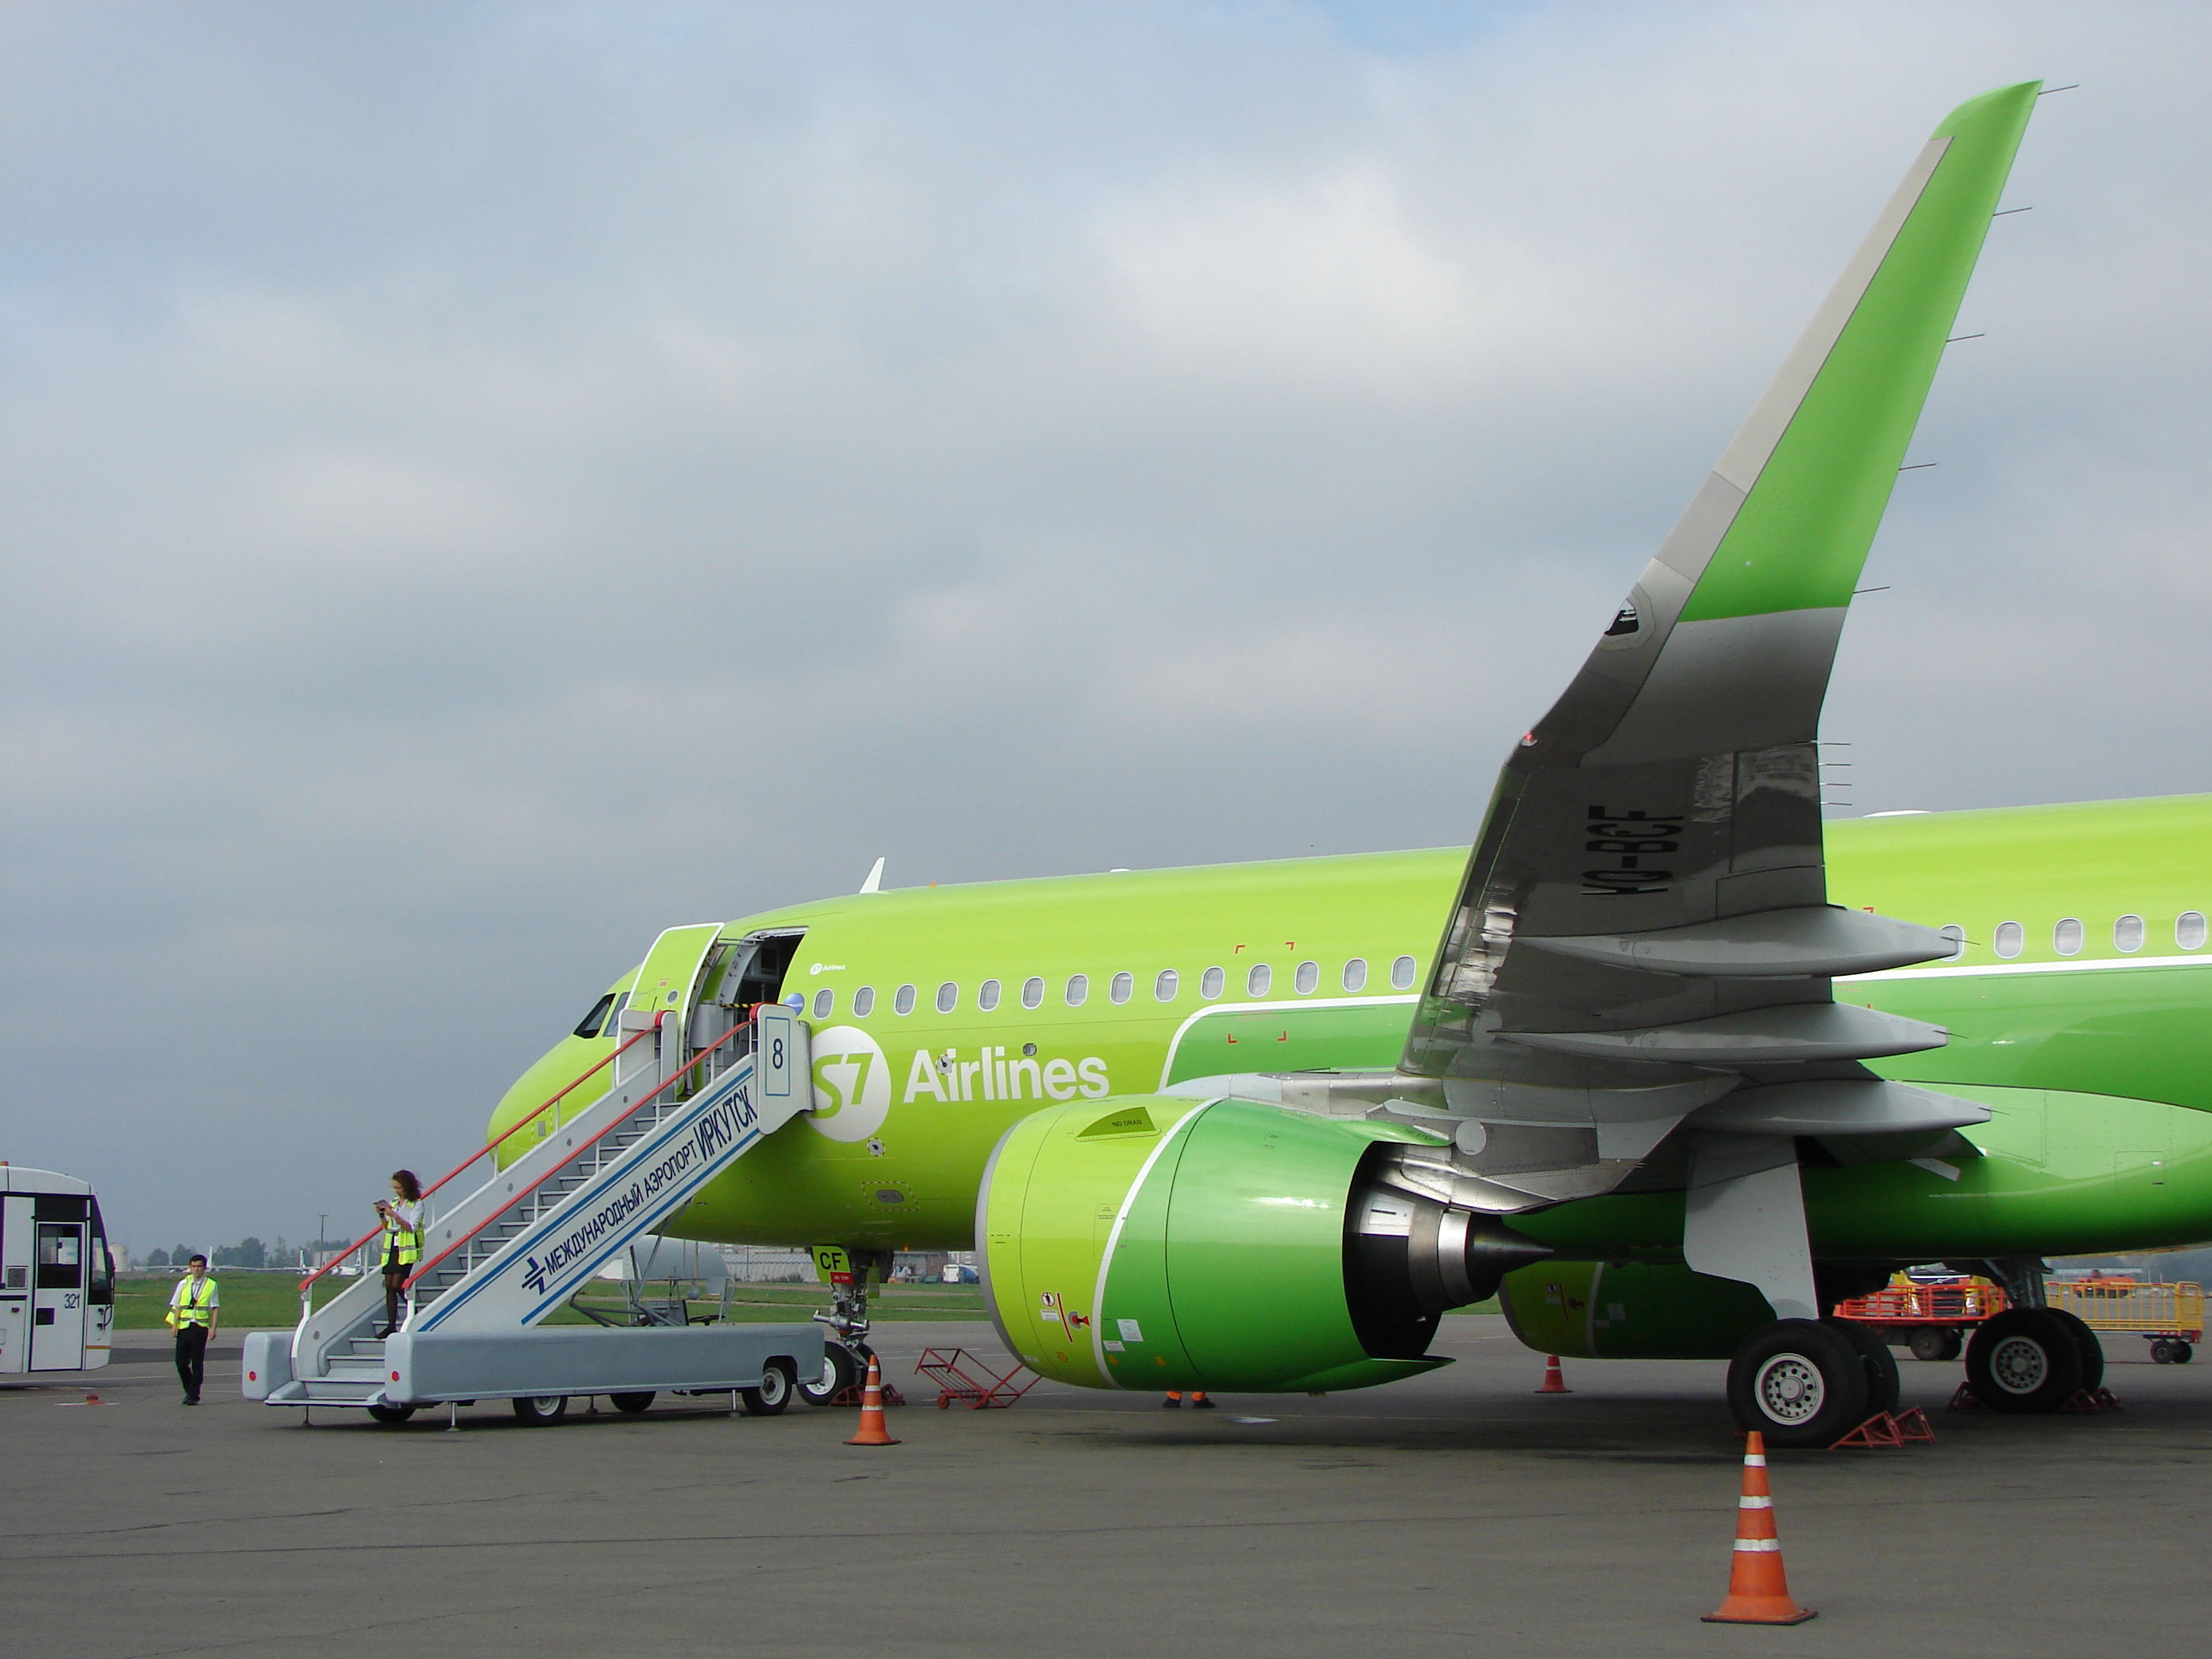 Service A320neo S7 Airlines in the airport of Irkutsk